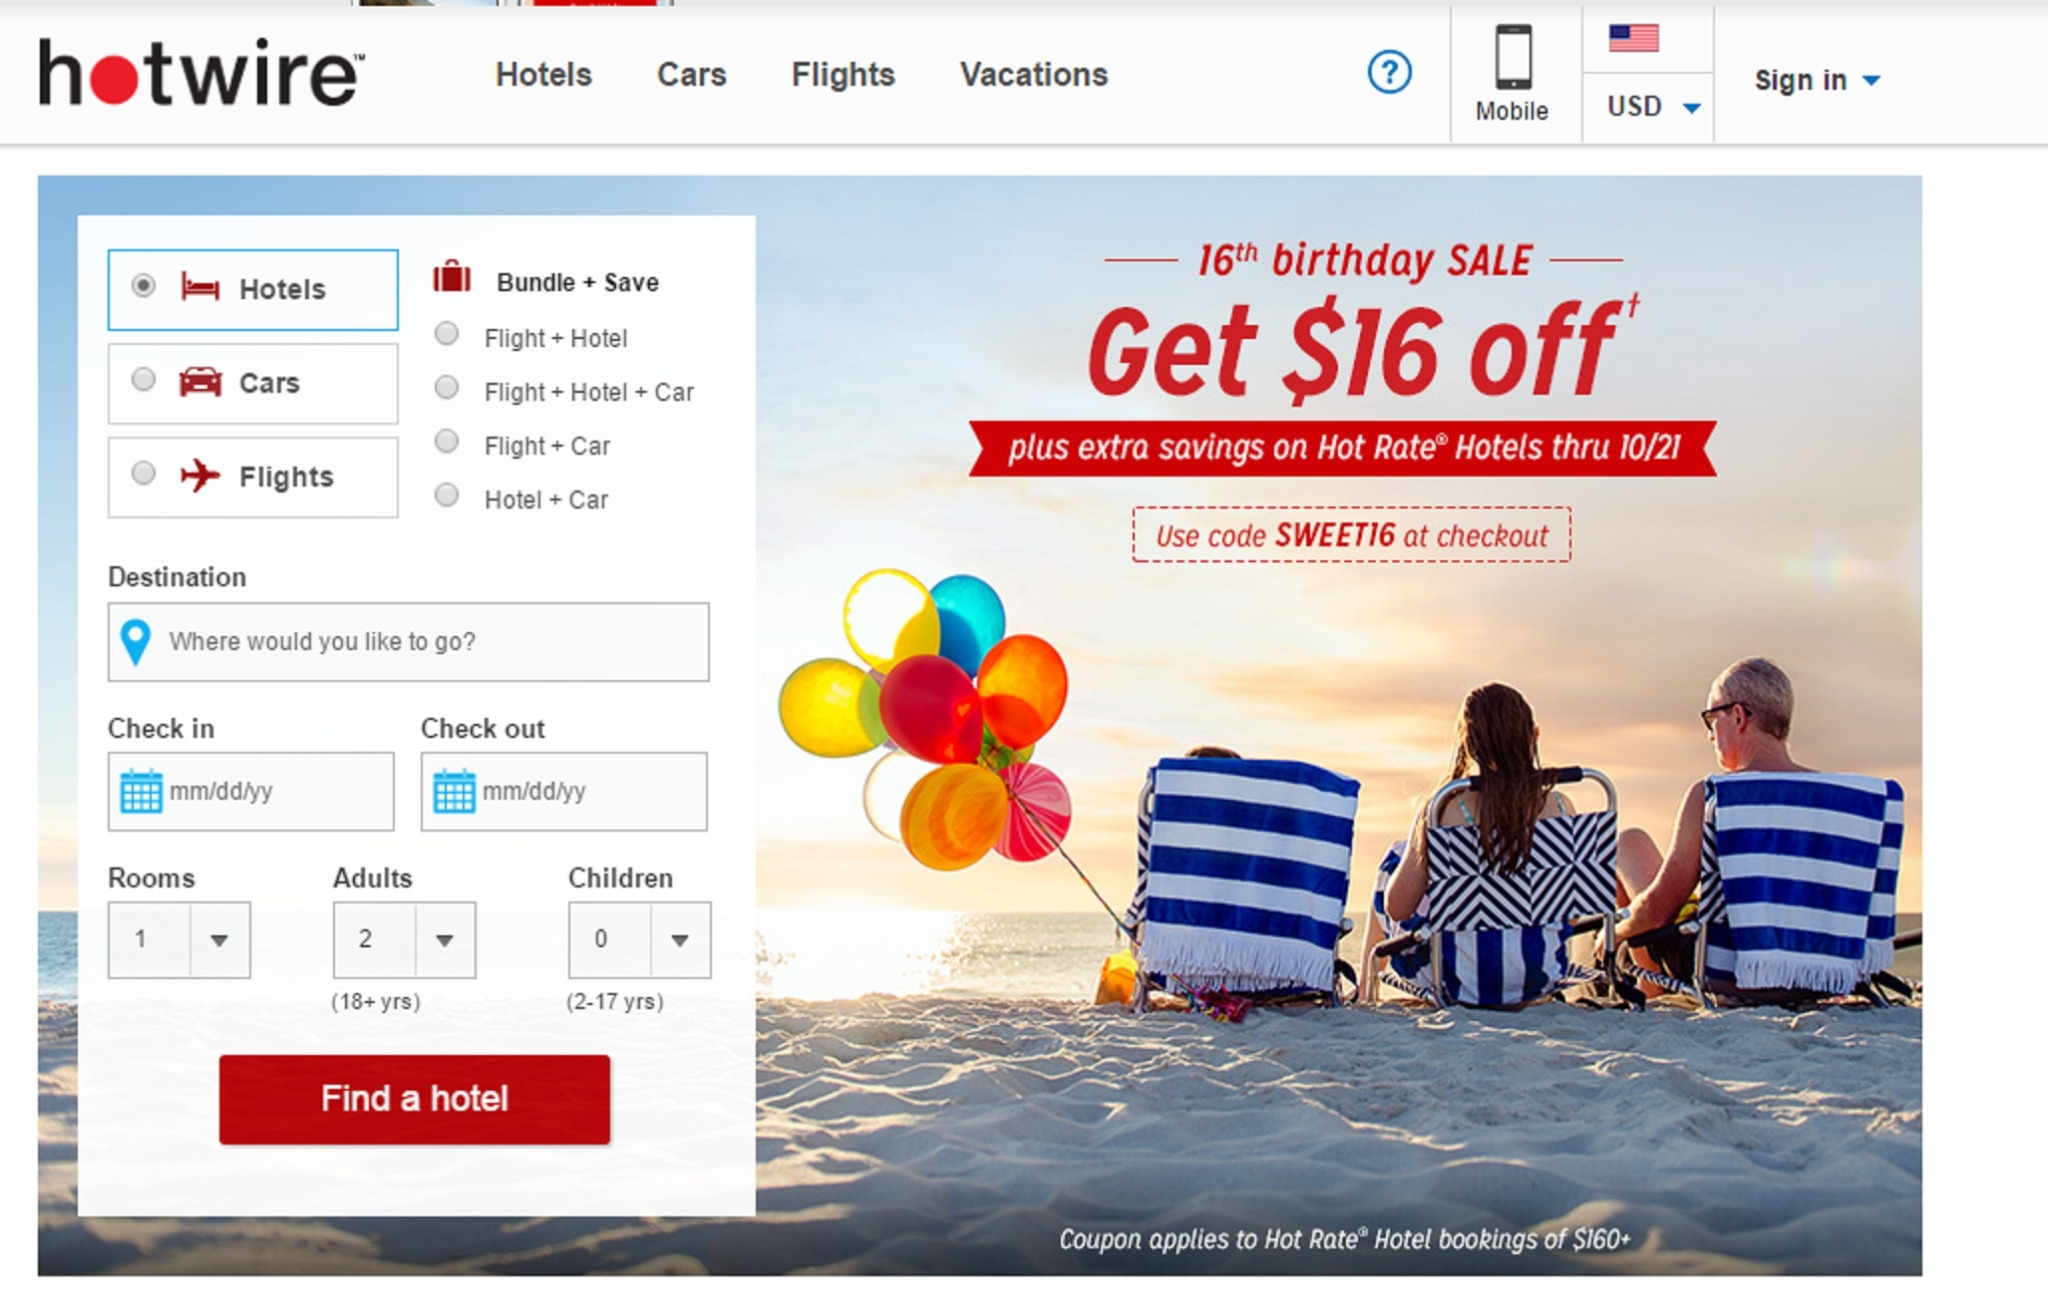 Hotwire discount coupons